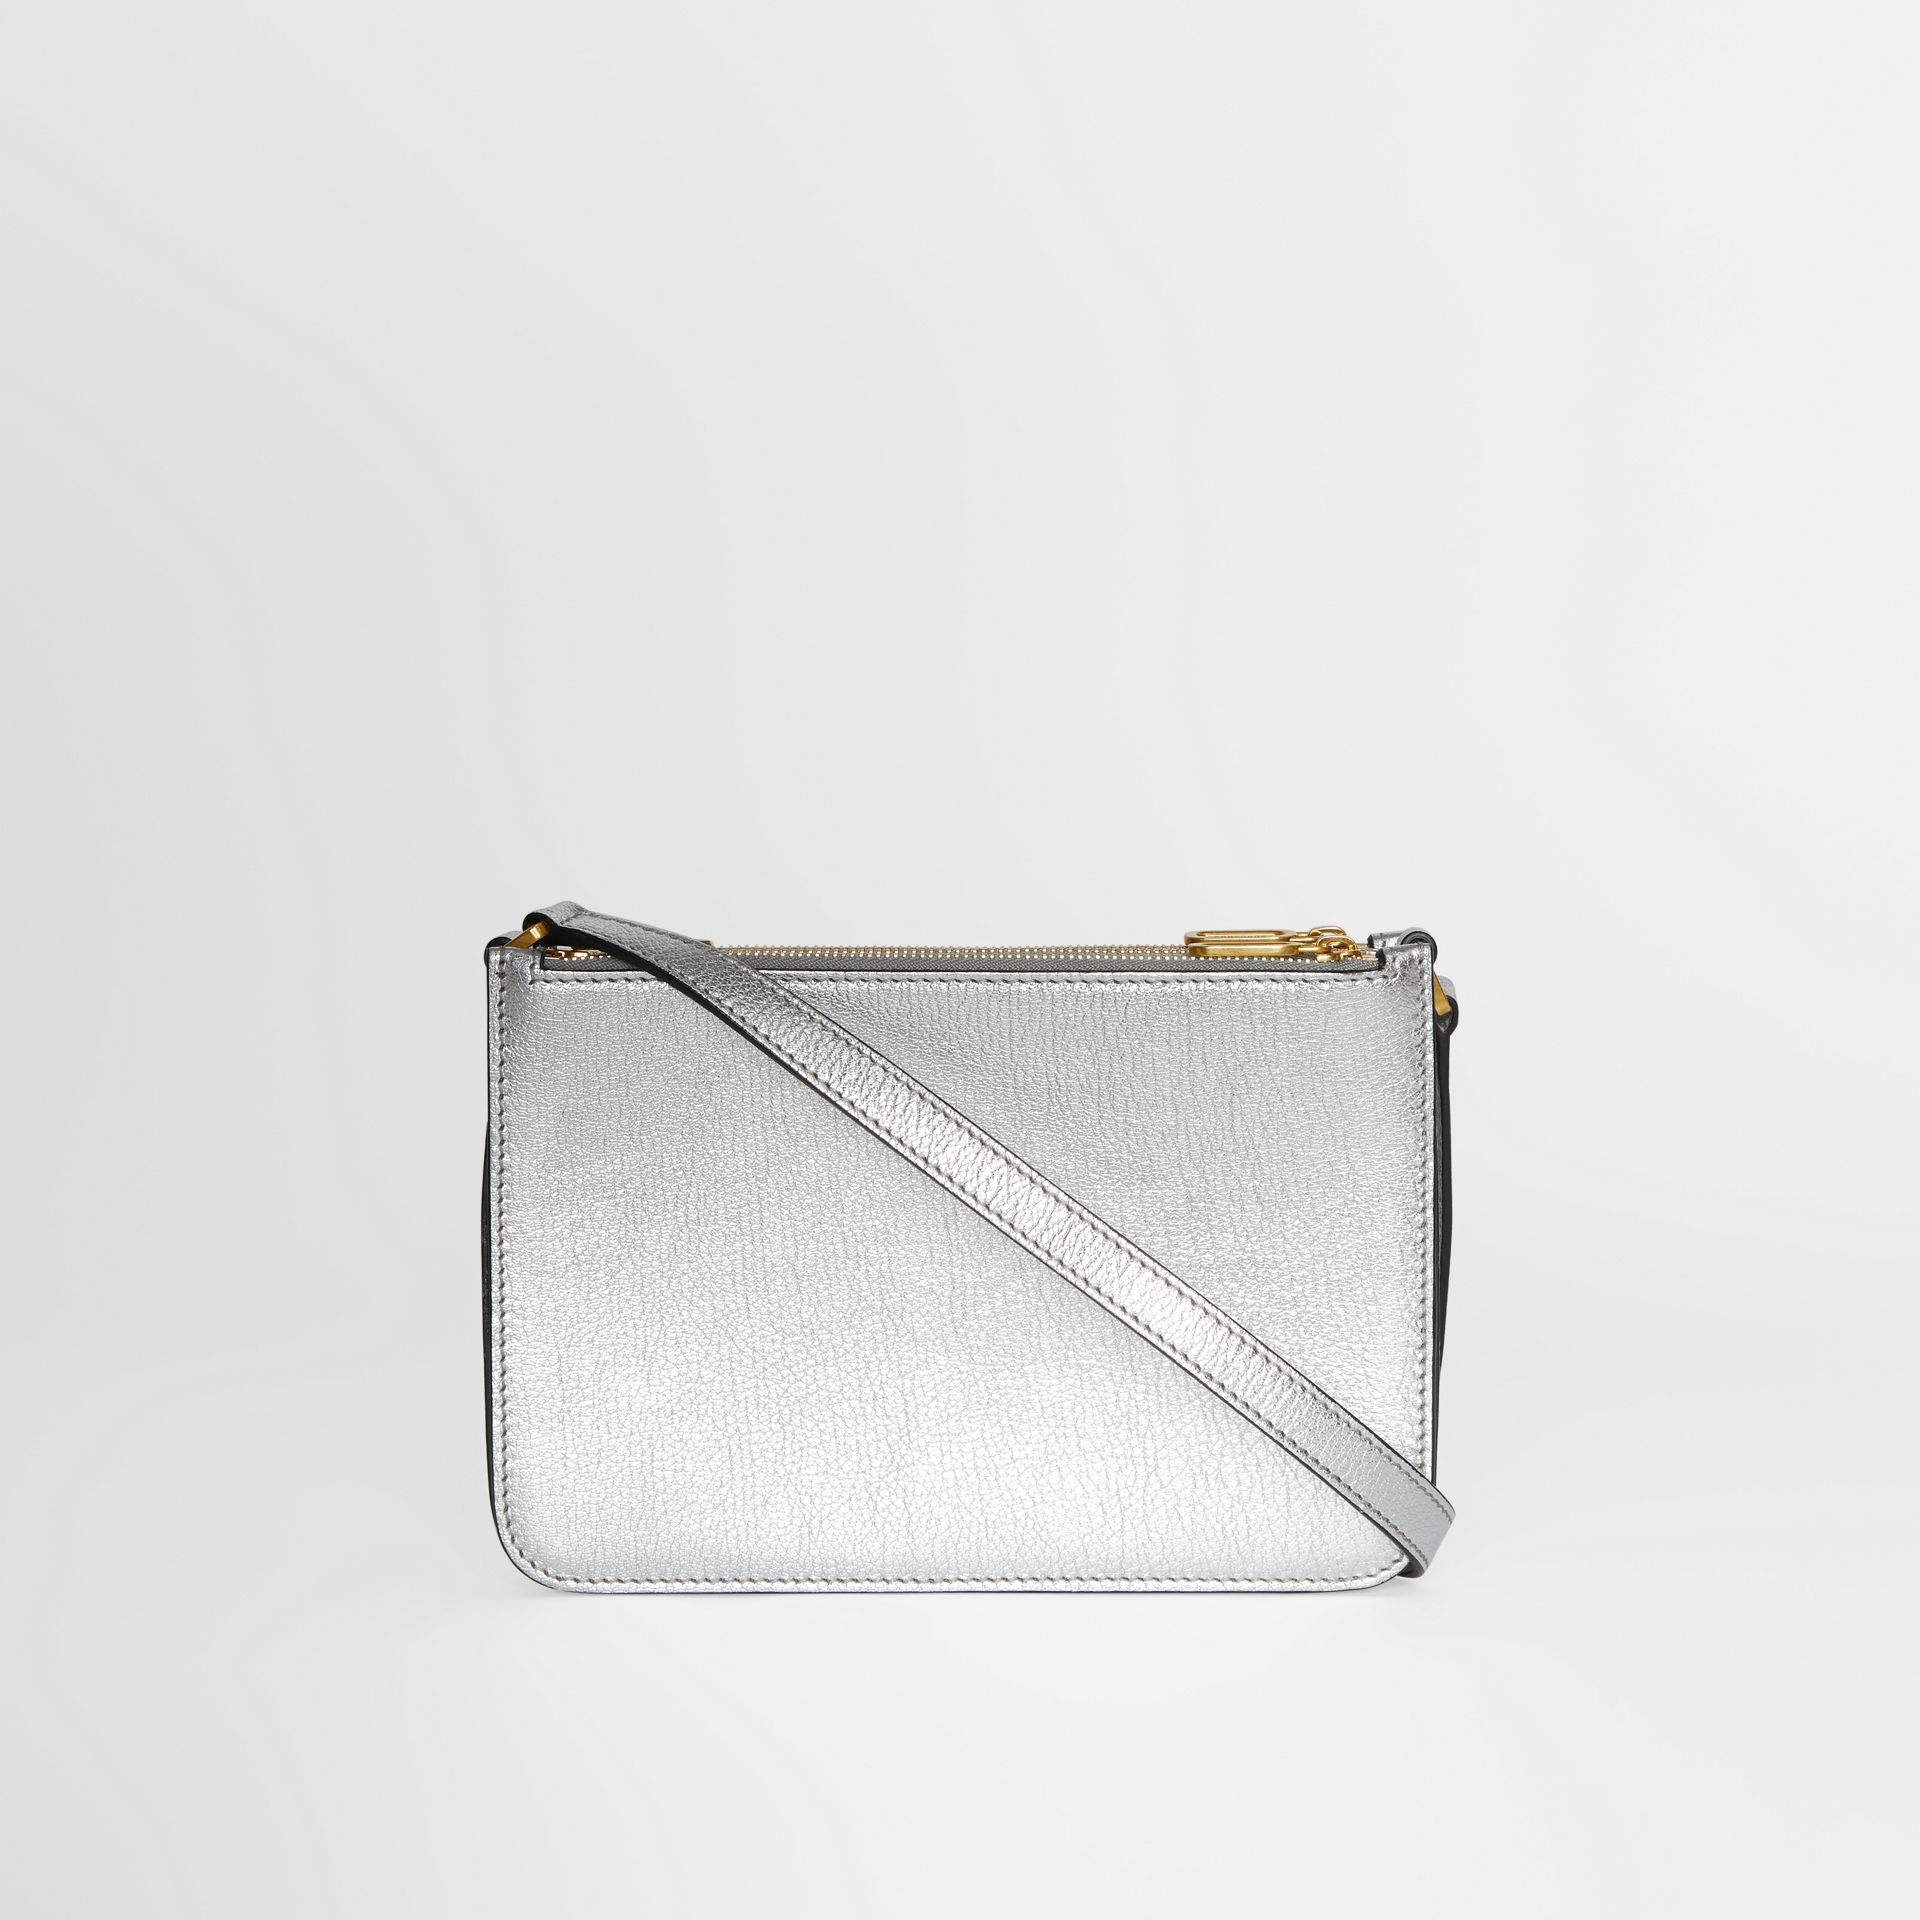 Triple Zip Metallic Leather Crossbody Bag in Silver - Women | Burberry Canada - gallery image 7